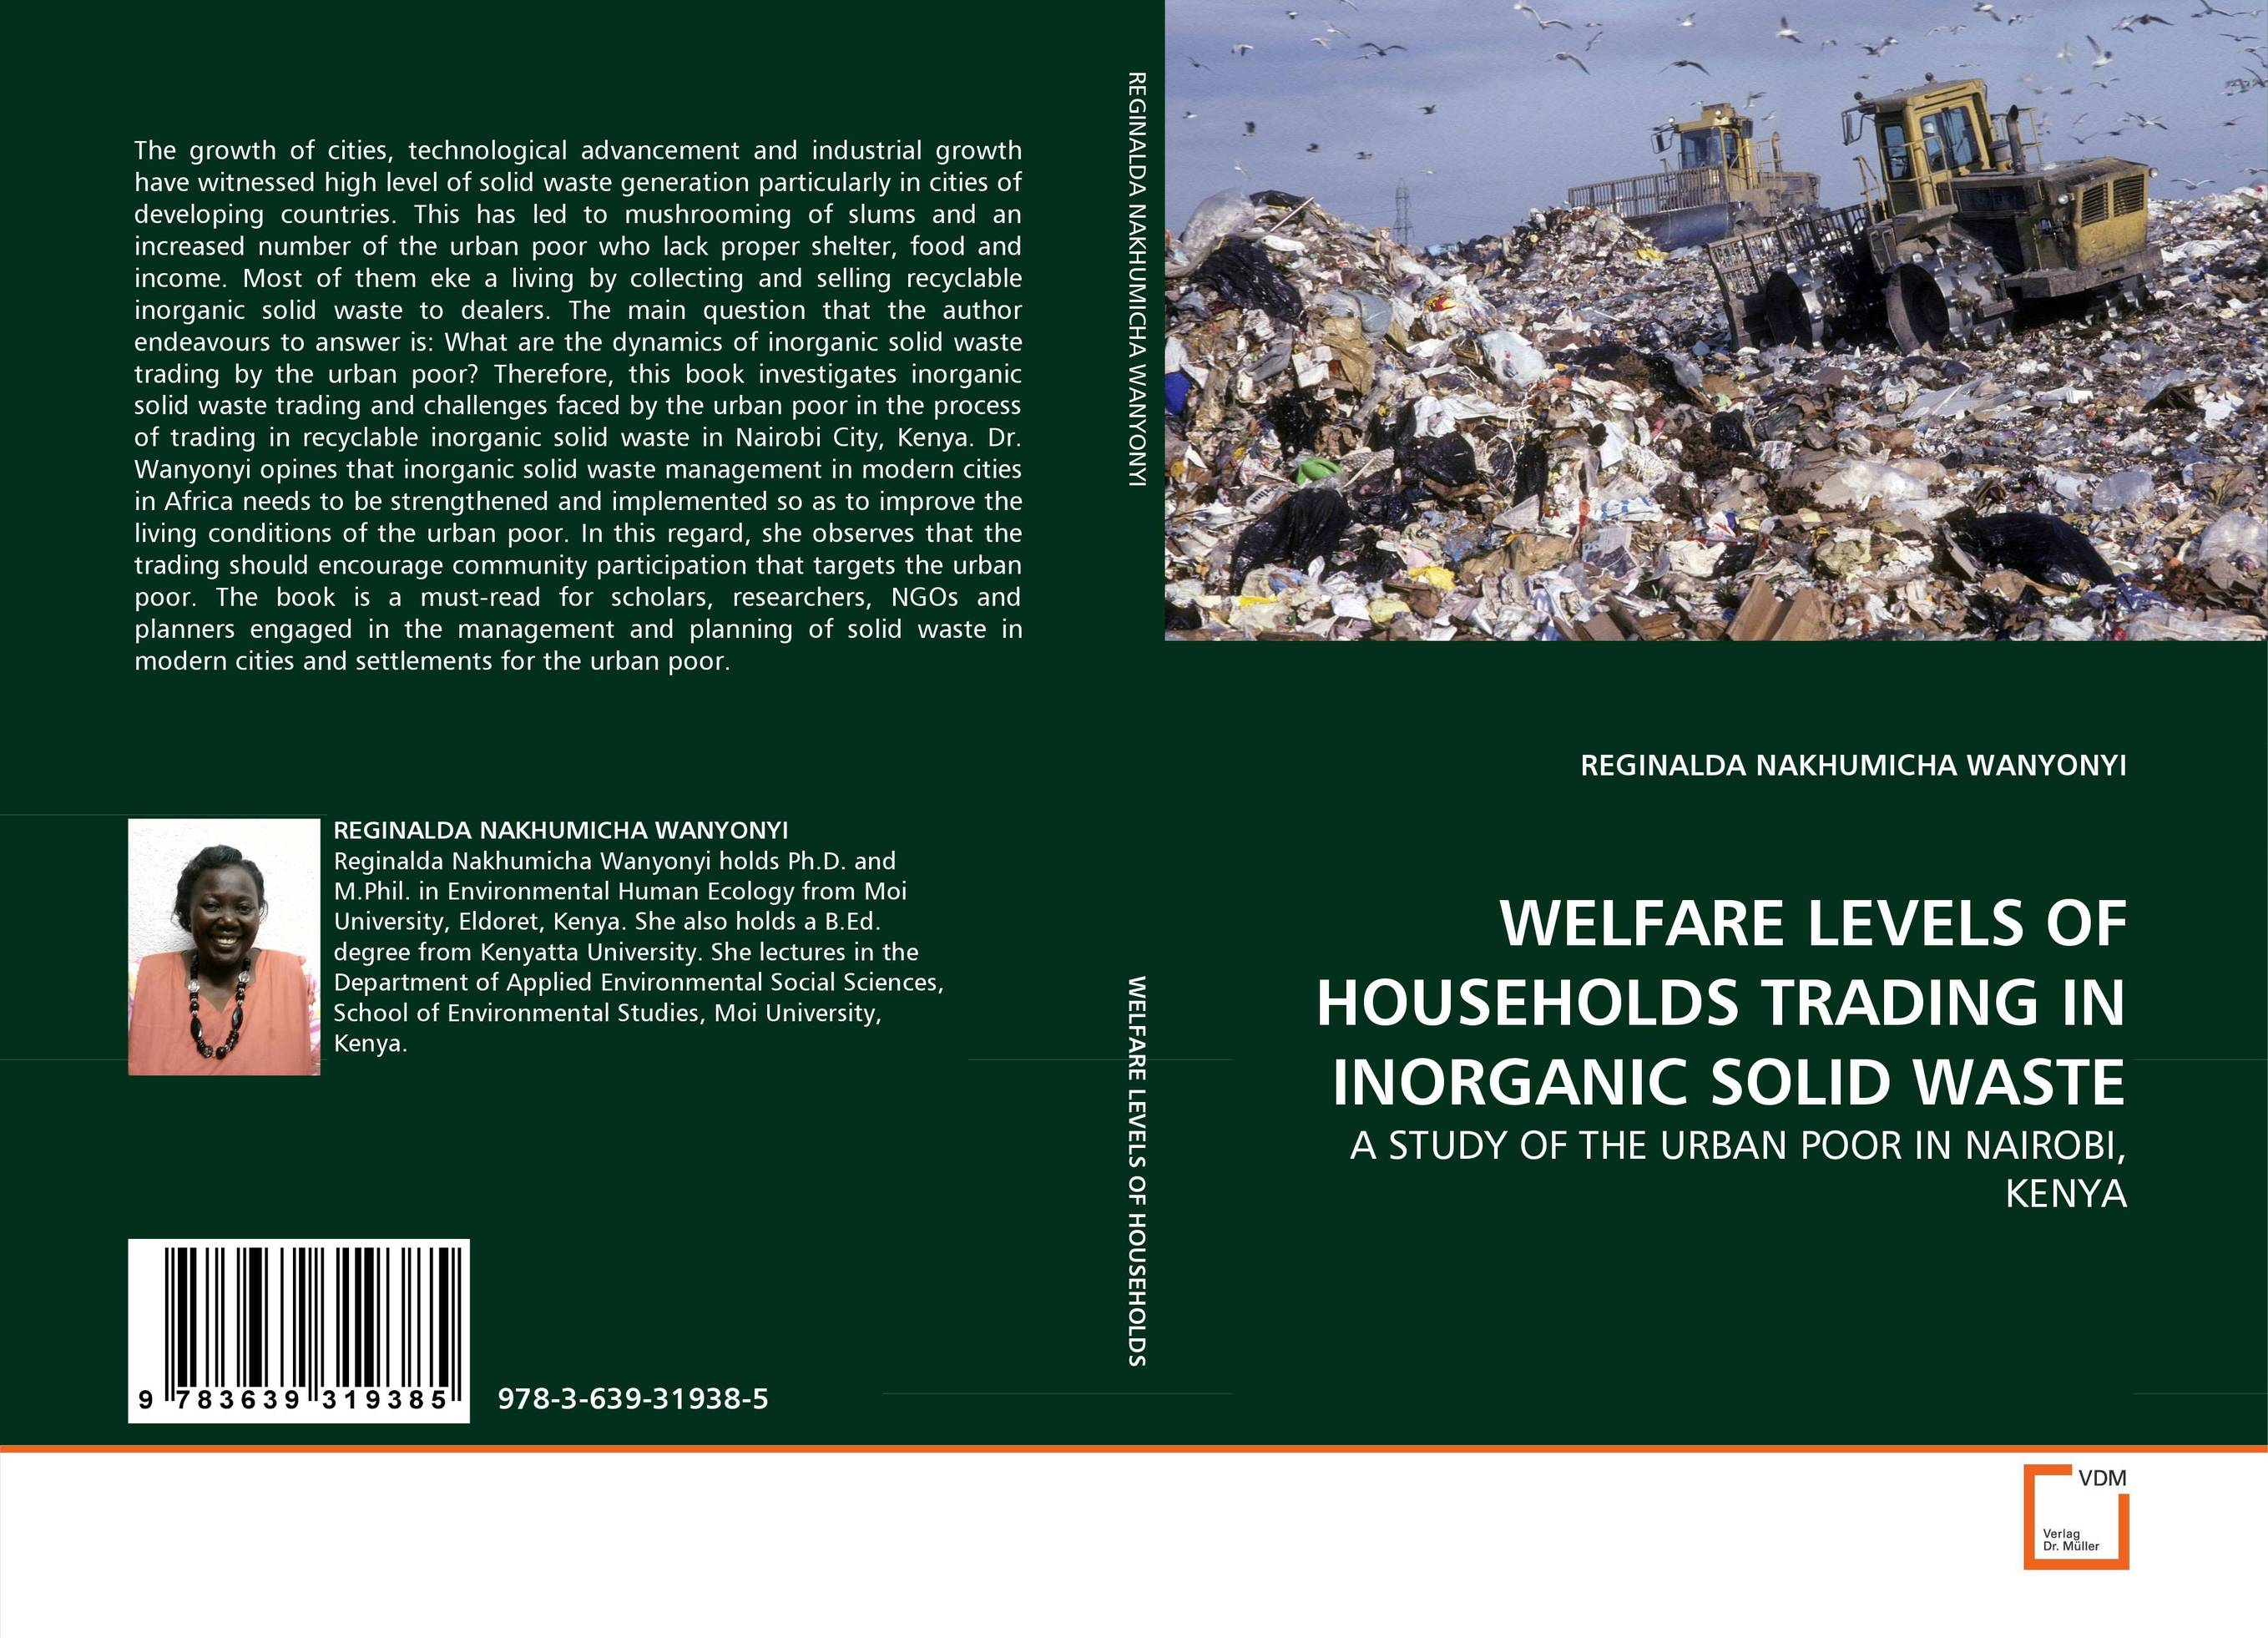 WELFARE LEVELS OF HOUSEHOLDS TRADING IN INORGANIC SOLID WASTE urban infrastructure for solid waste management